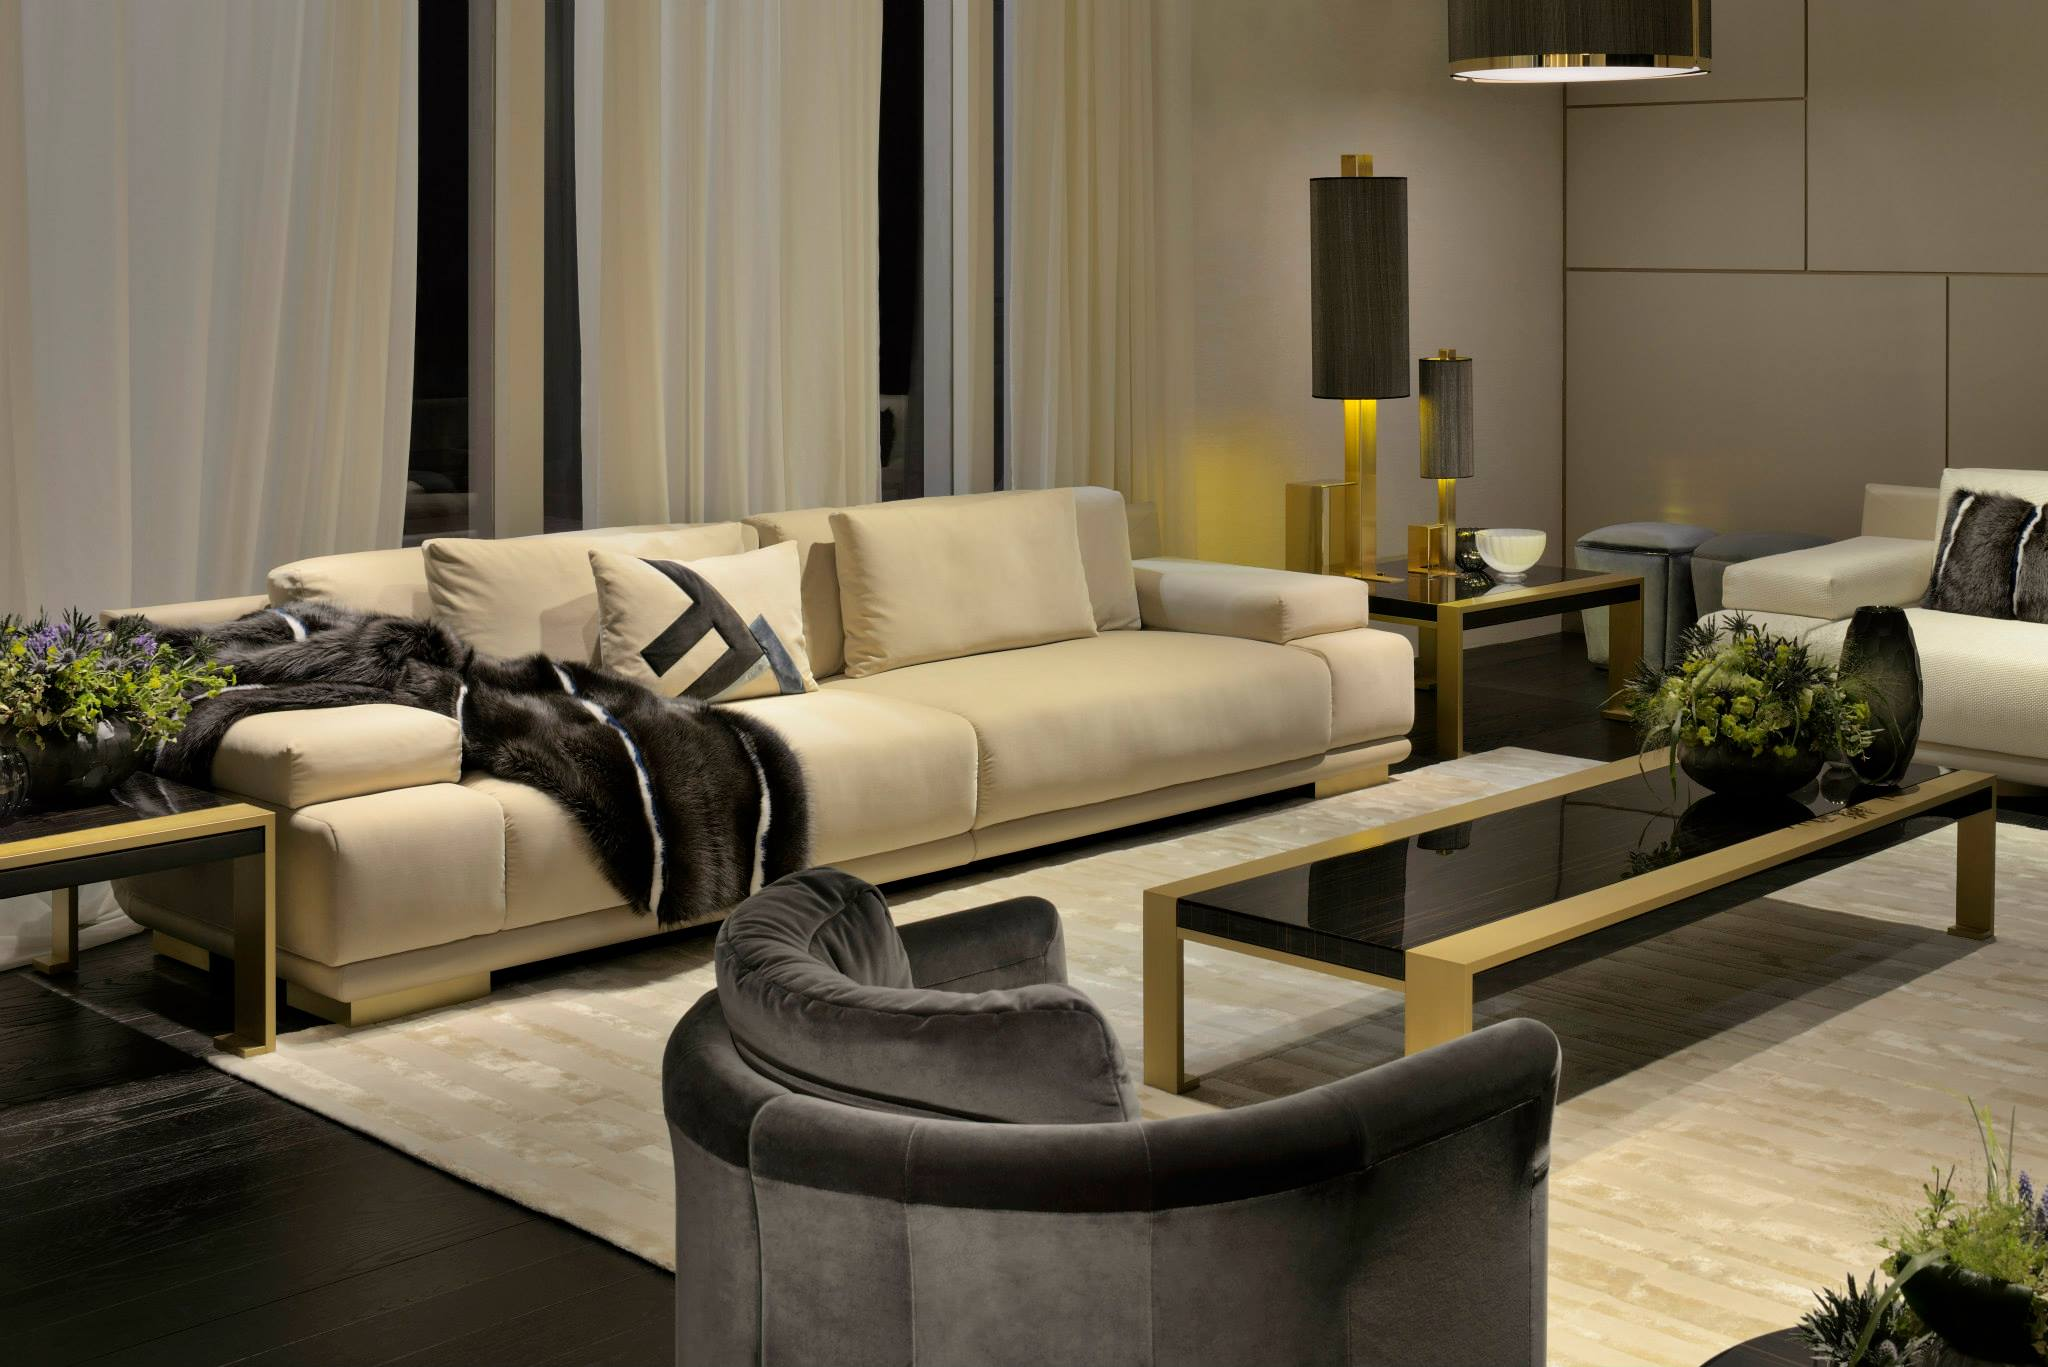 fendi casa collection by thierry lemaire2luxury2 com. Black Bedroom Furniture Sets. Home Design Ideas